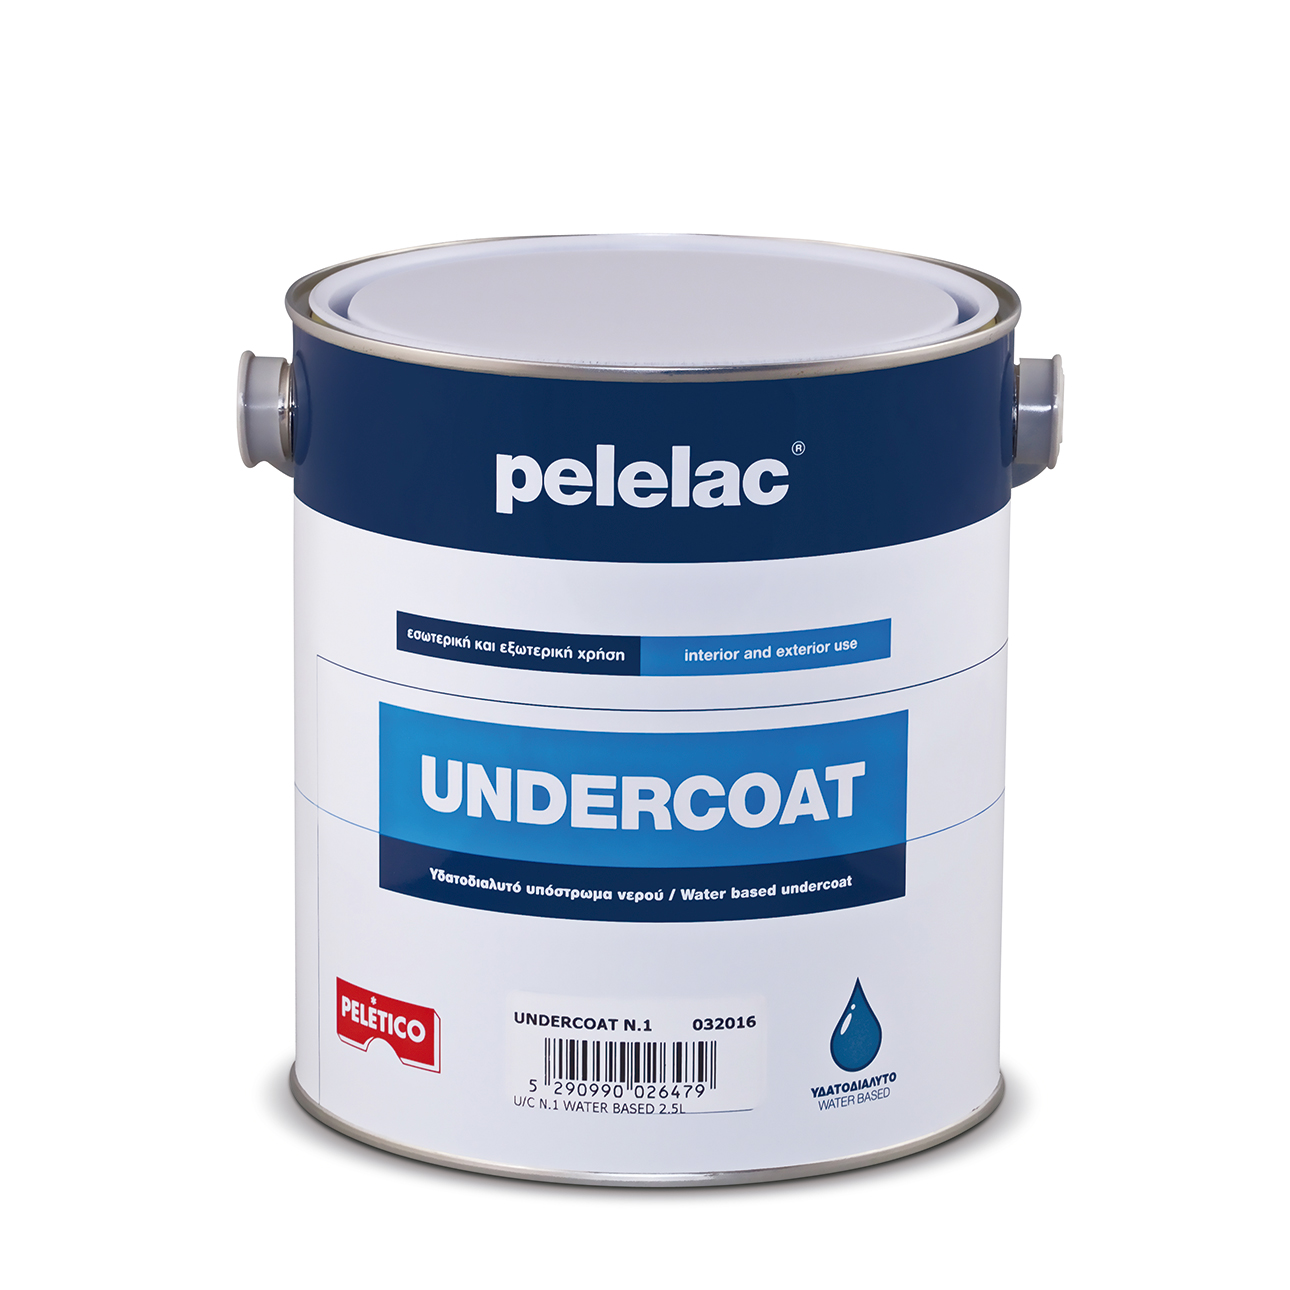 PELELAC UNDERCOAT N.2 WATER BASED 5L